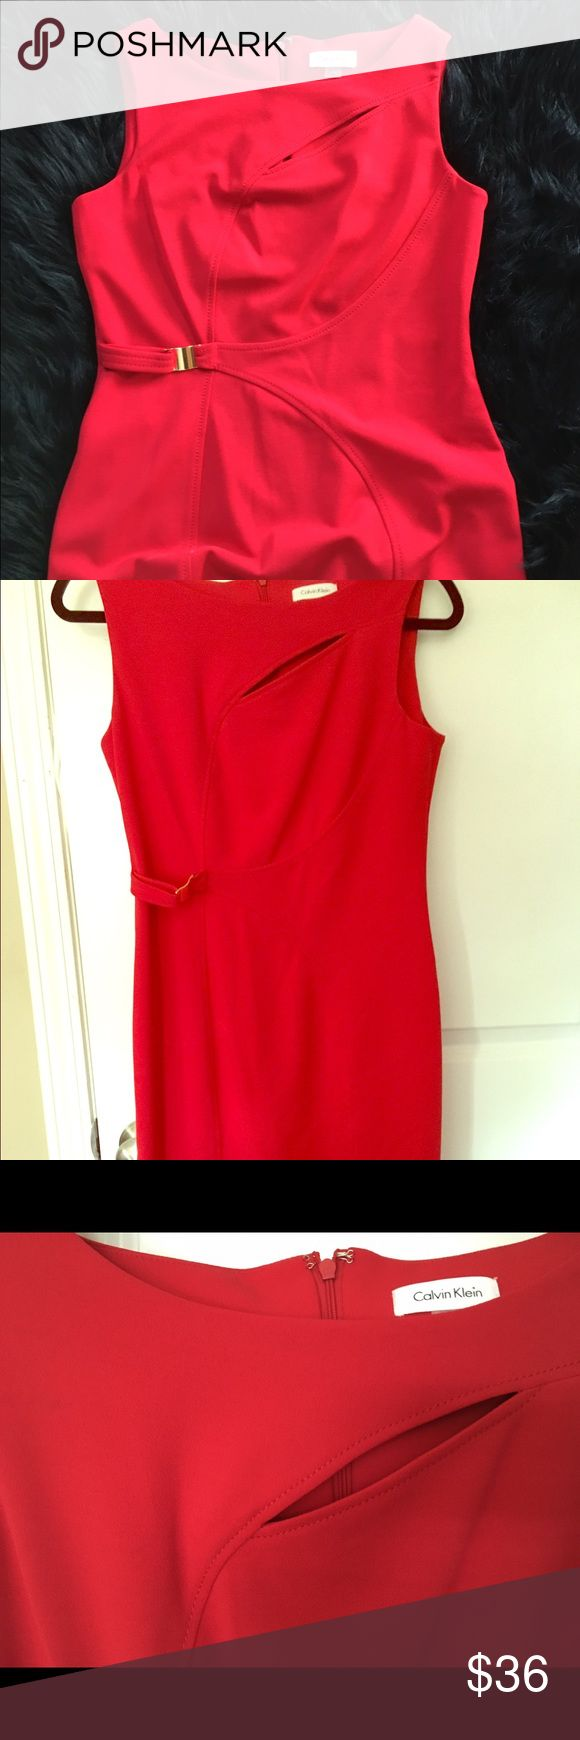 👠NWT👠CALVIN KLEIN STEATH👠 SUPER SEXY👠6 FIRE ENGINE RED WITH SLIT AT DÉCOLLETÉ AND SIDE BUCKLE MAKE THIS A WONDERFUL DRESS FOR EVERY OCCASION. JUST BELOW KNEE LENGTH. Calvin Klein Dresses Midi